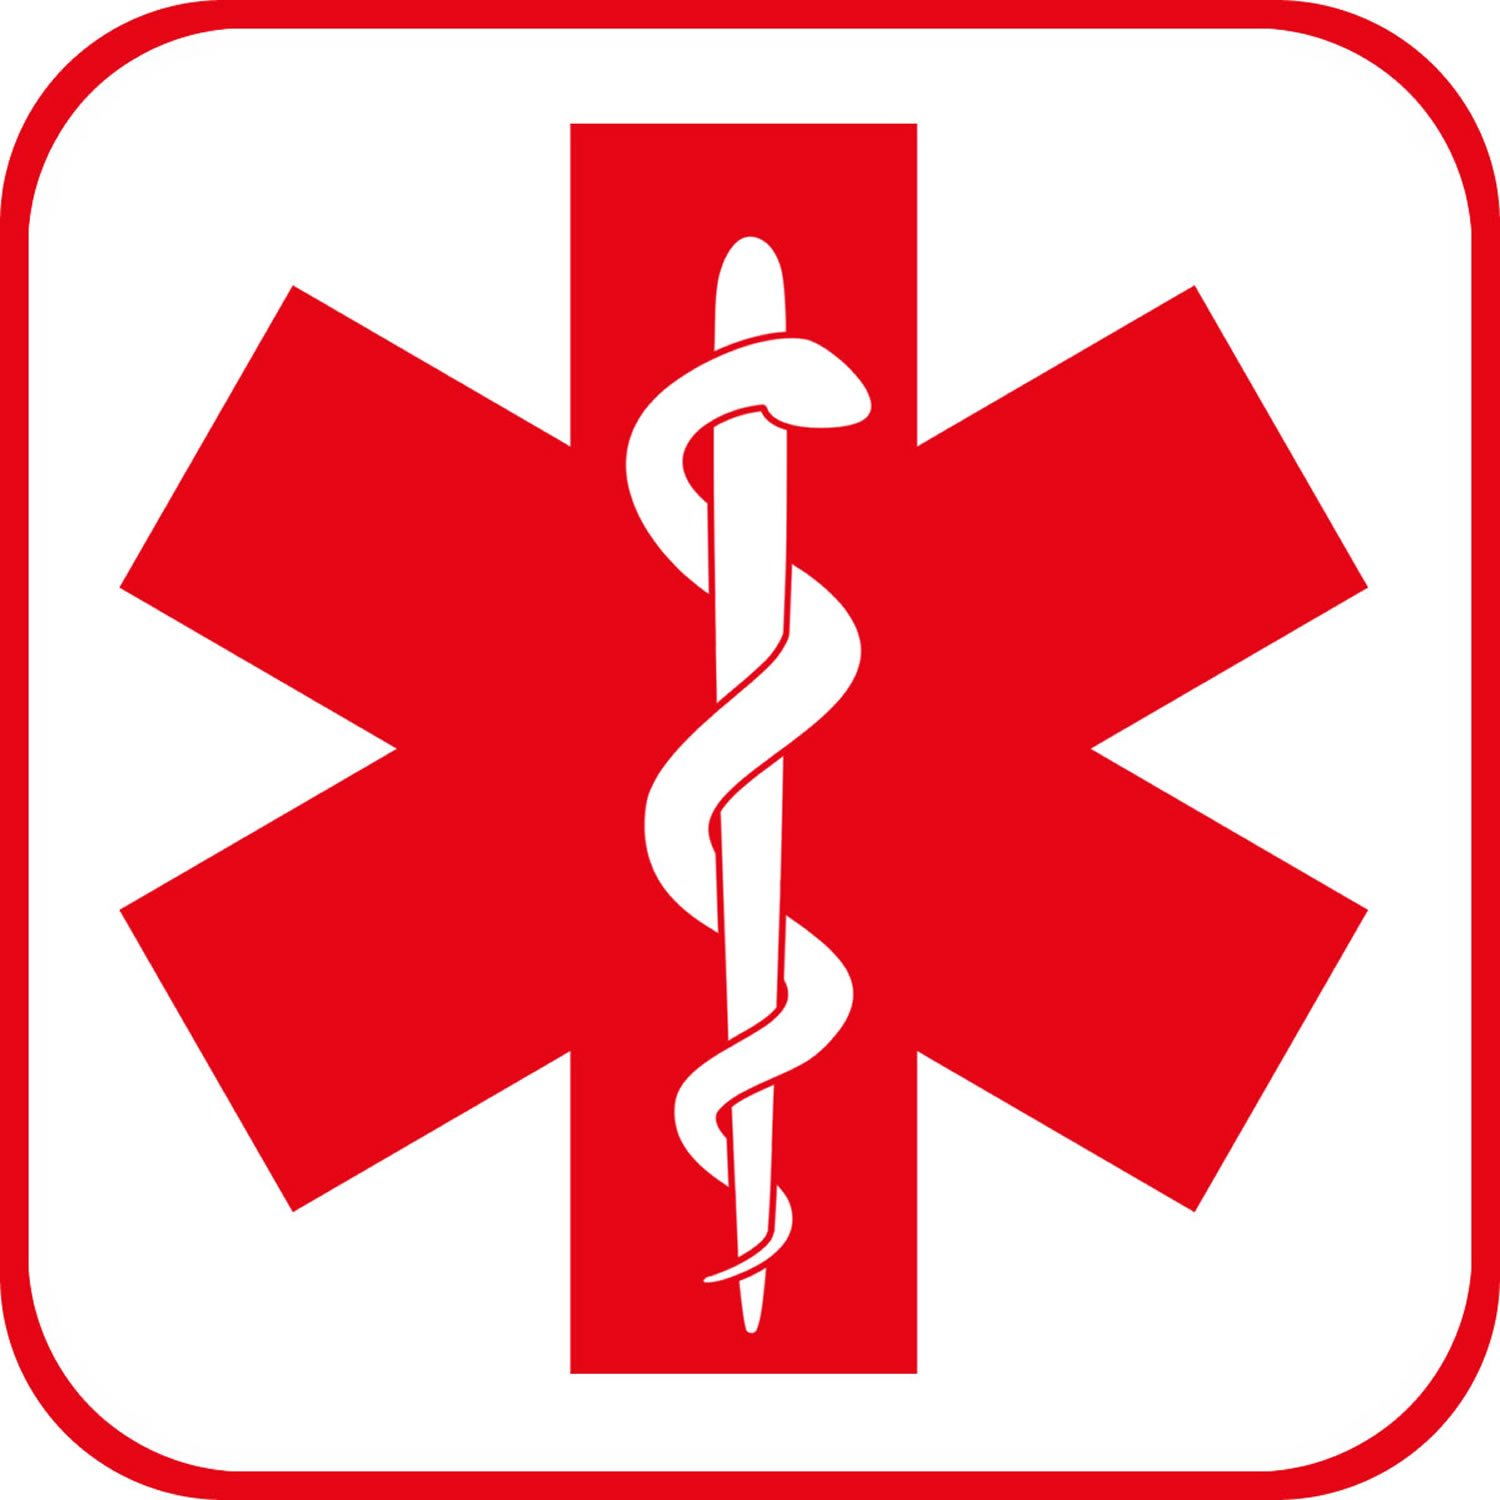 Red Medical Symbol - ClipArt Best